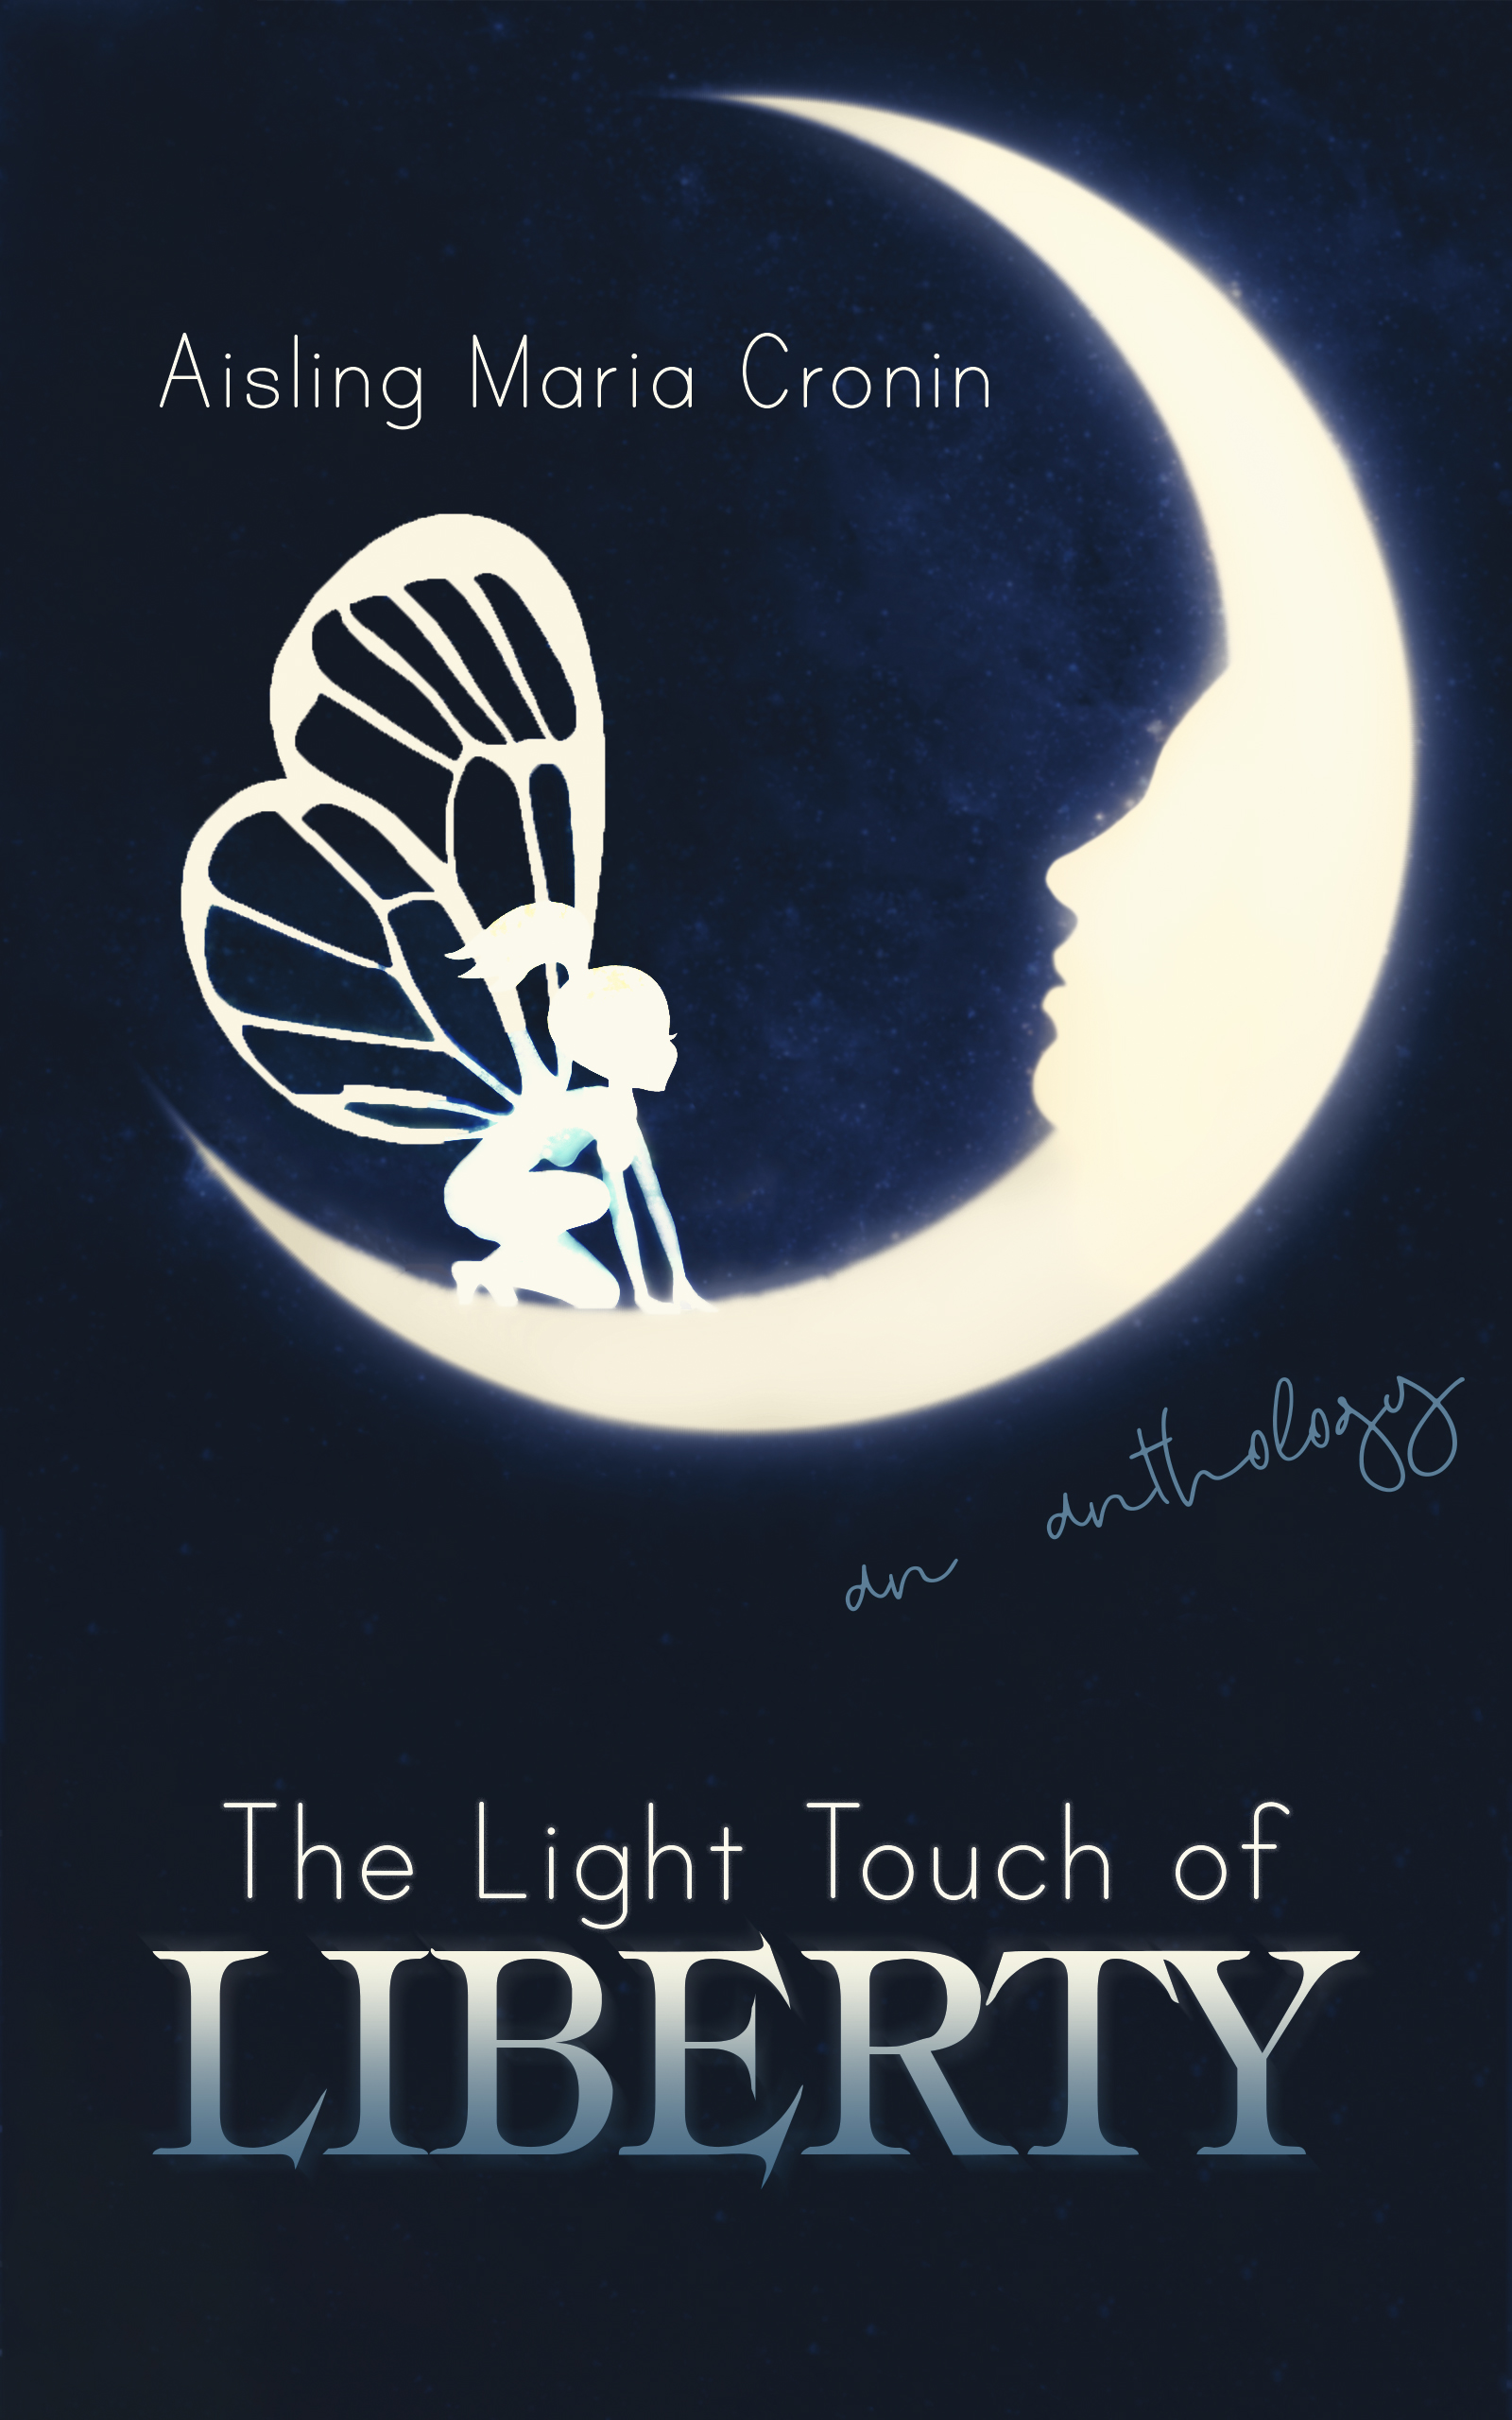 The Light Touch of Liberty by Aisling Maria Cronin